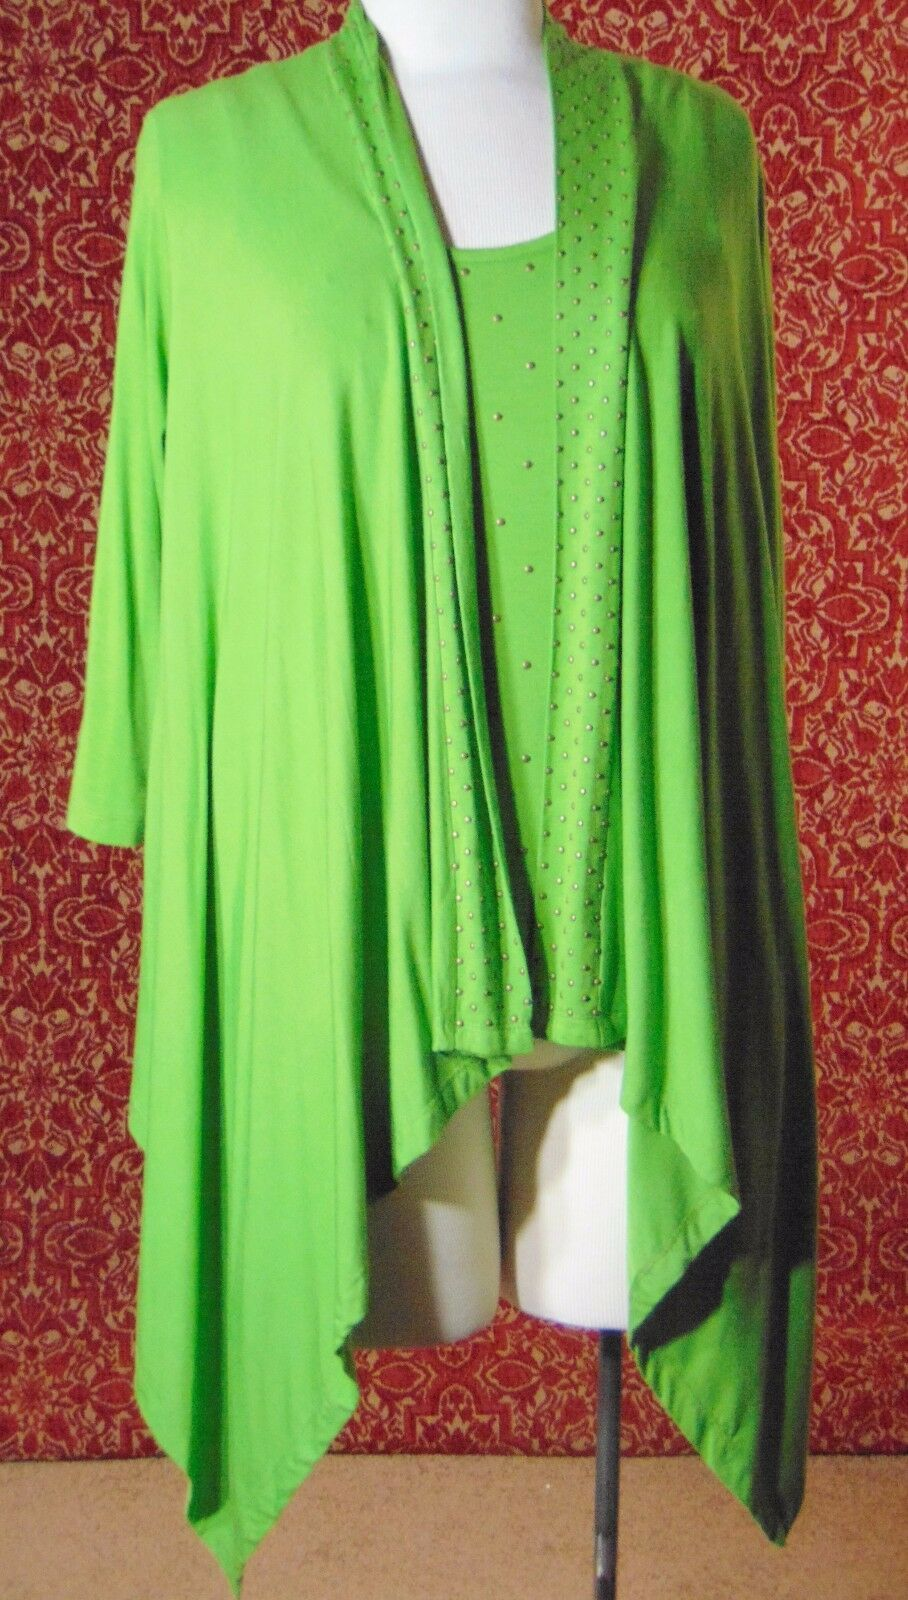 ETOILE green 2 piece stretch rayon tank blouse & sweater jacket M (T47-02I8G)